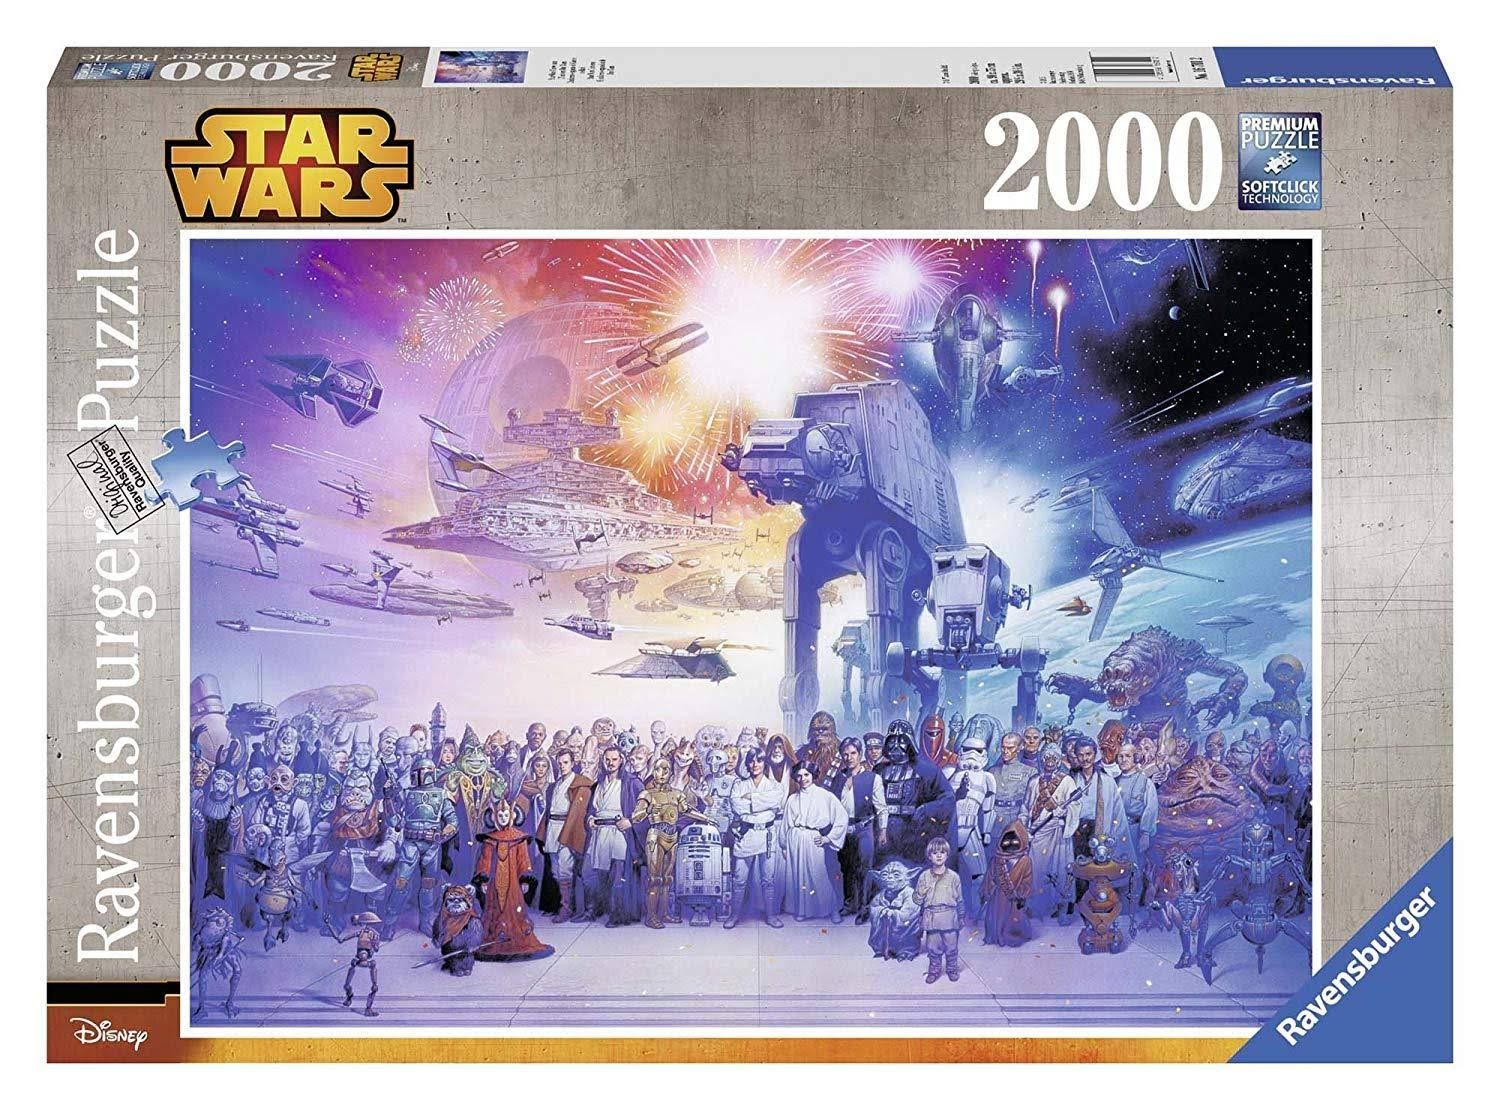 Ravensburger Star Wars Universe Adult Puzzles - 2000ct